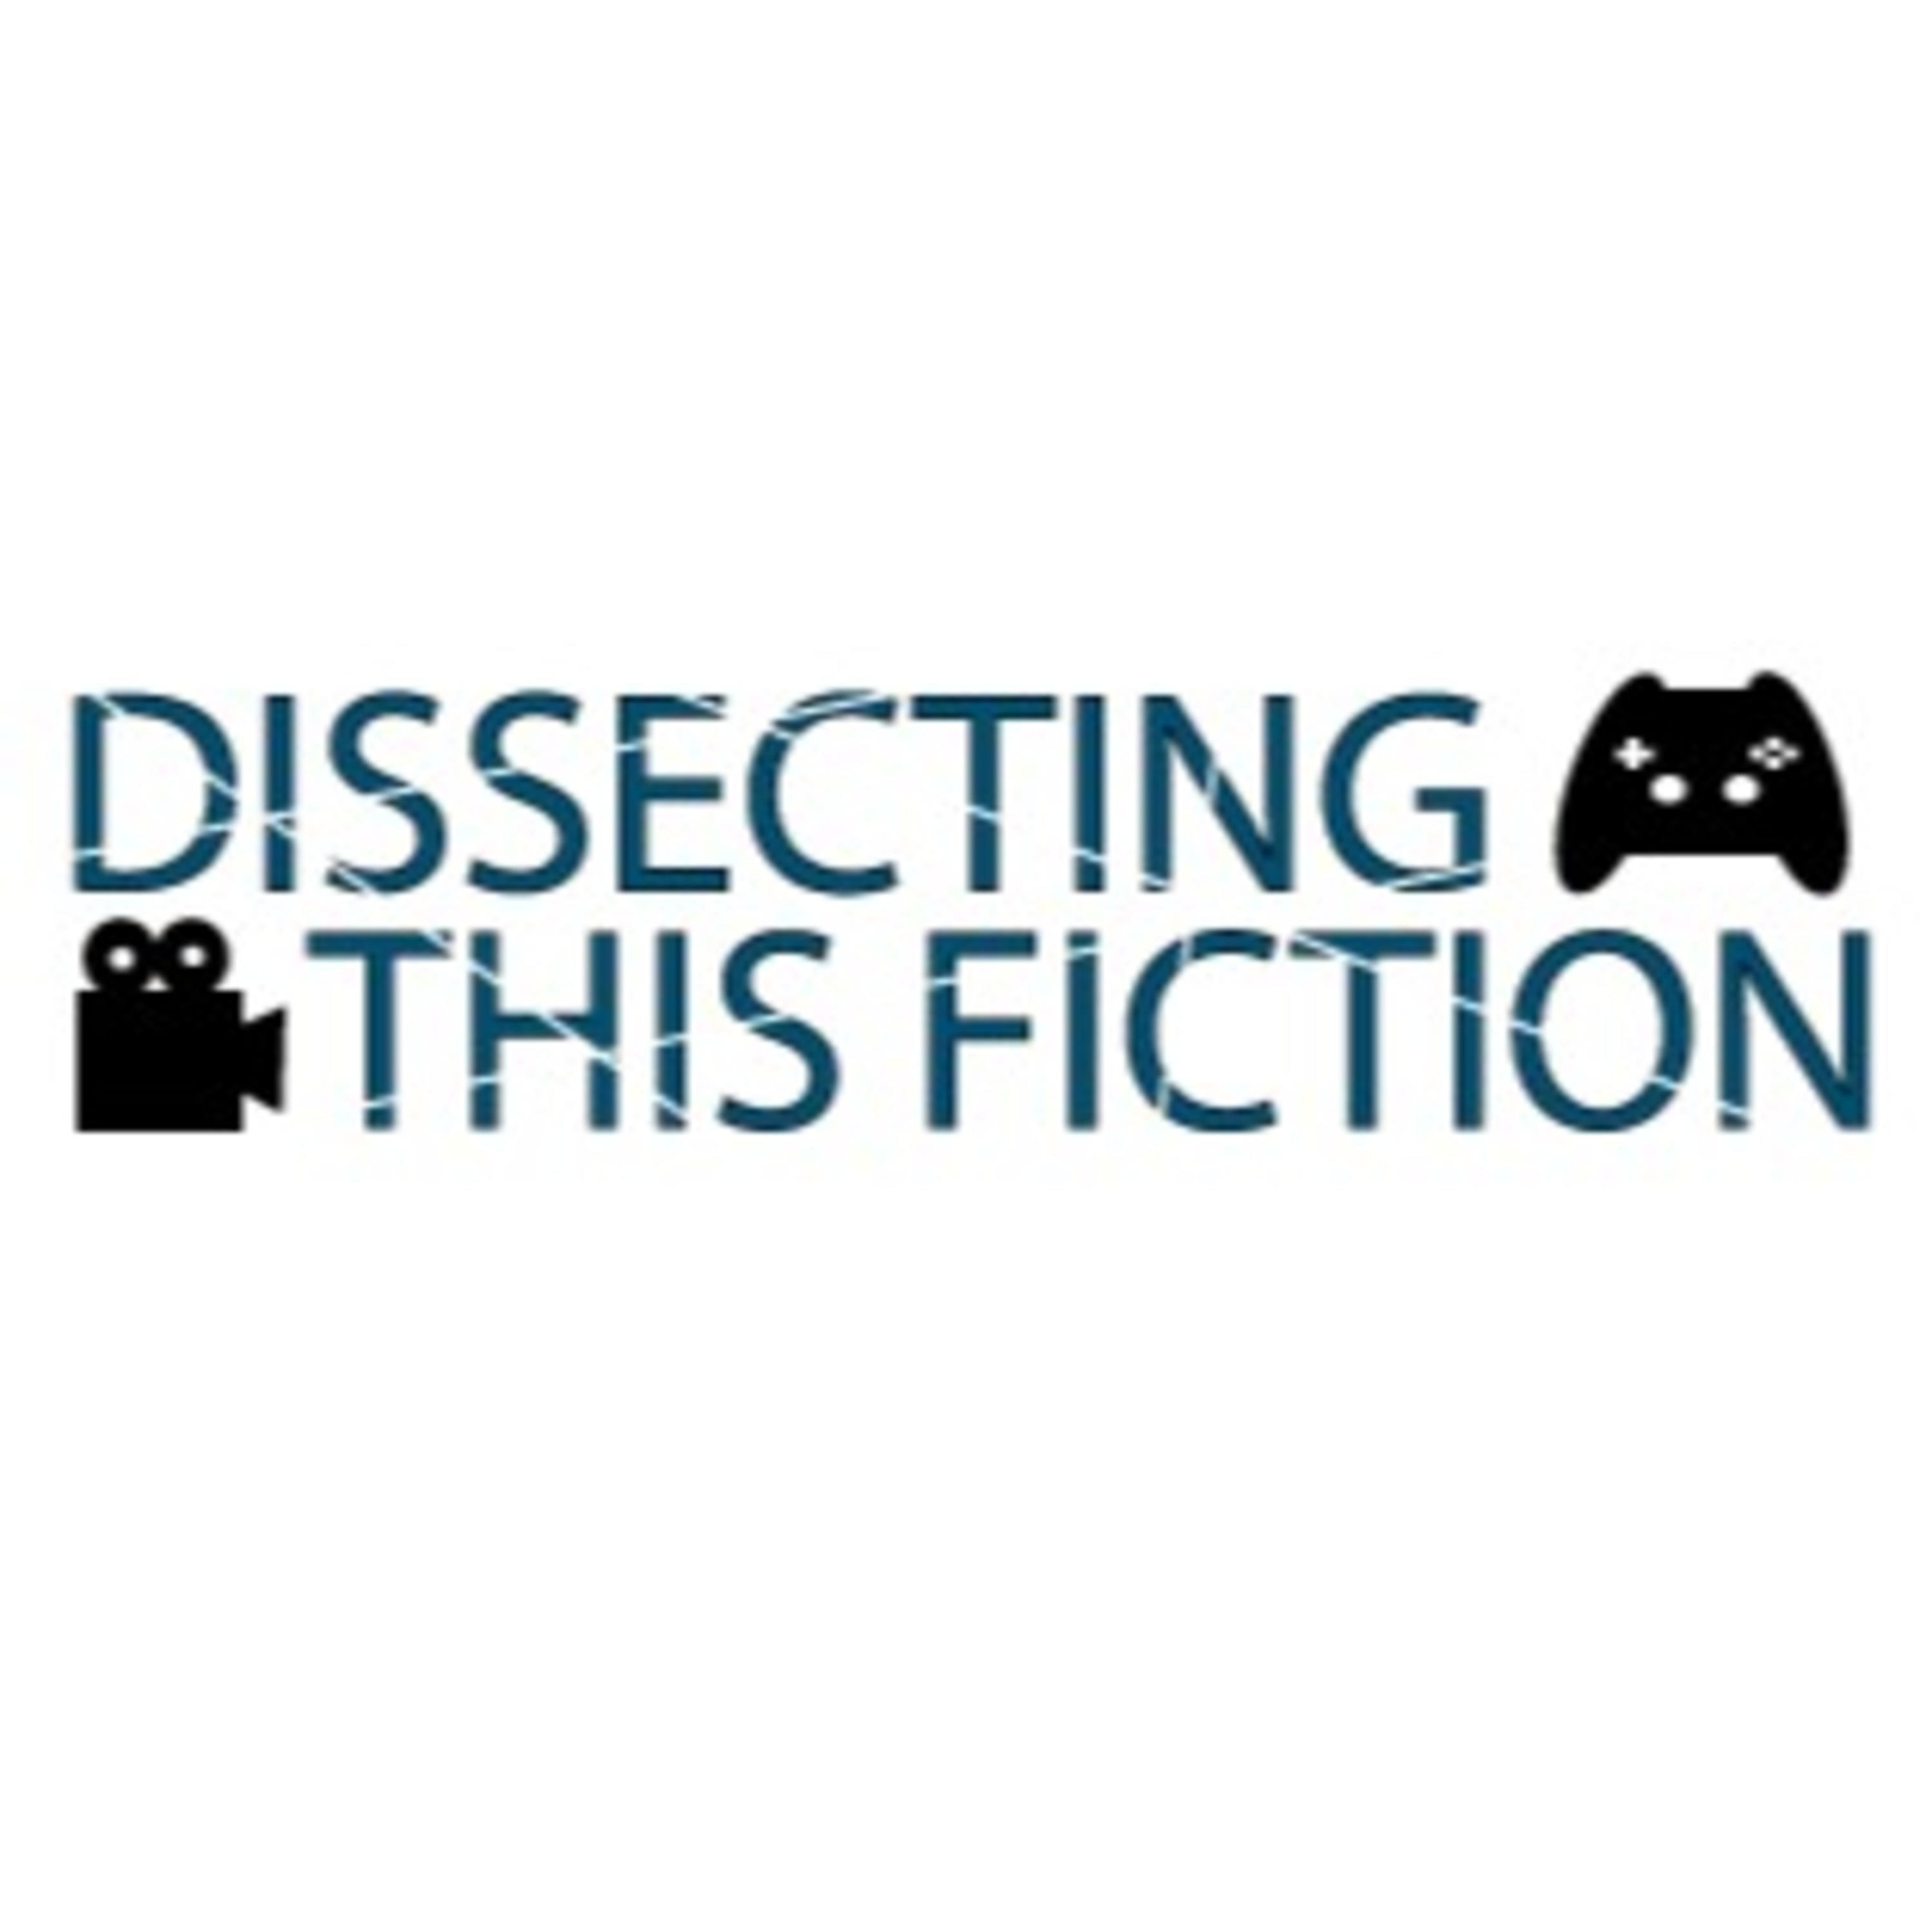 Dissecting This Fiction